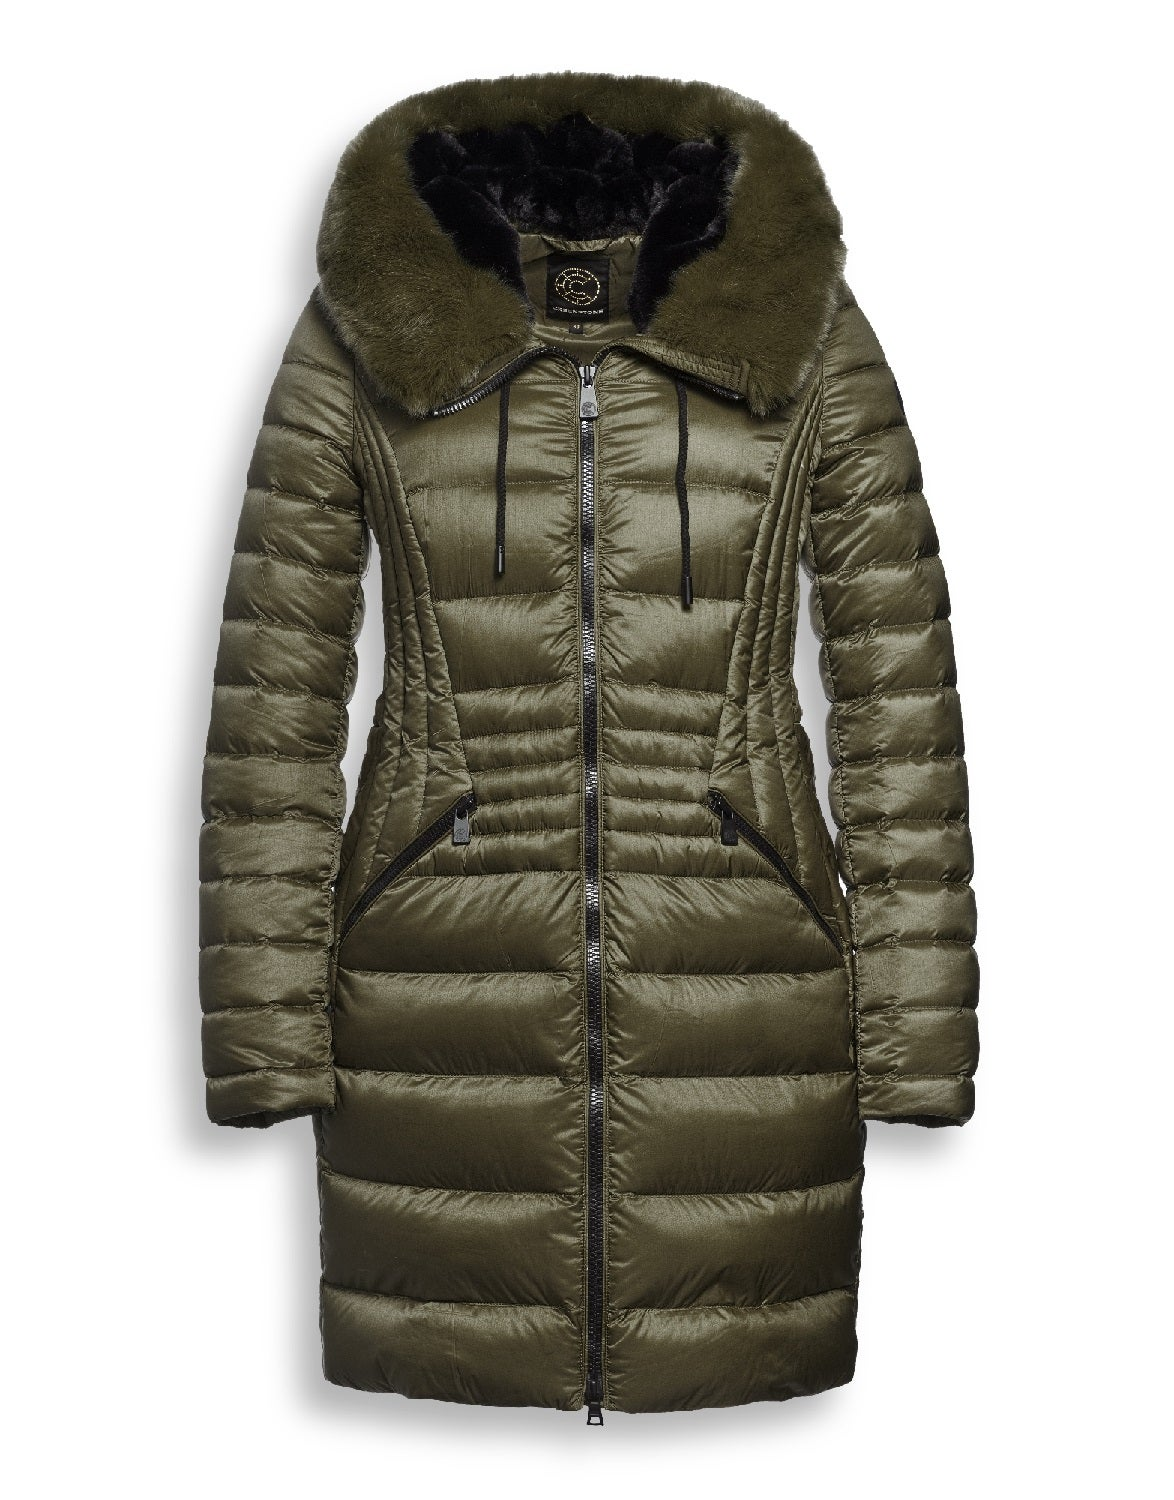 Creenstone Fitted With Faux Fur Collar Women's Down Jacket